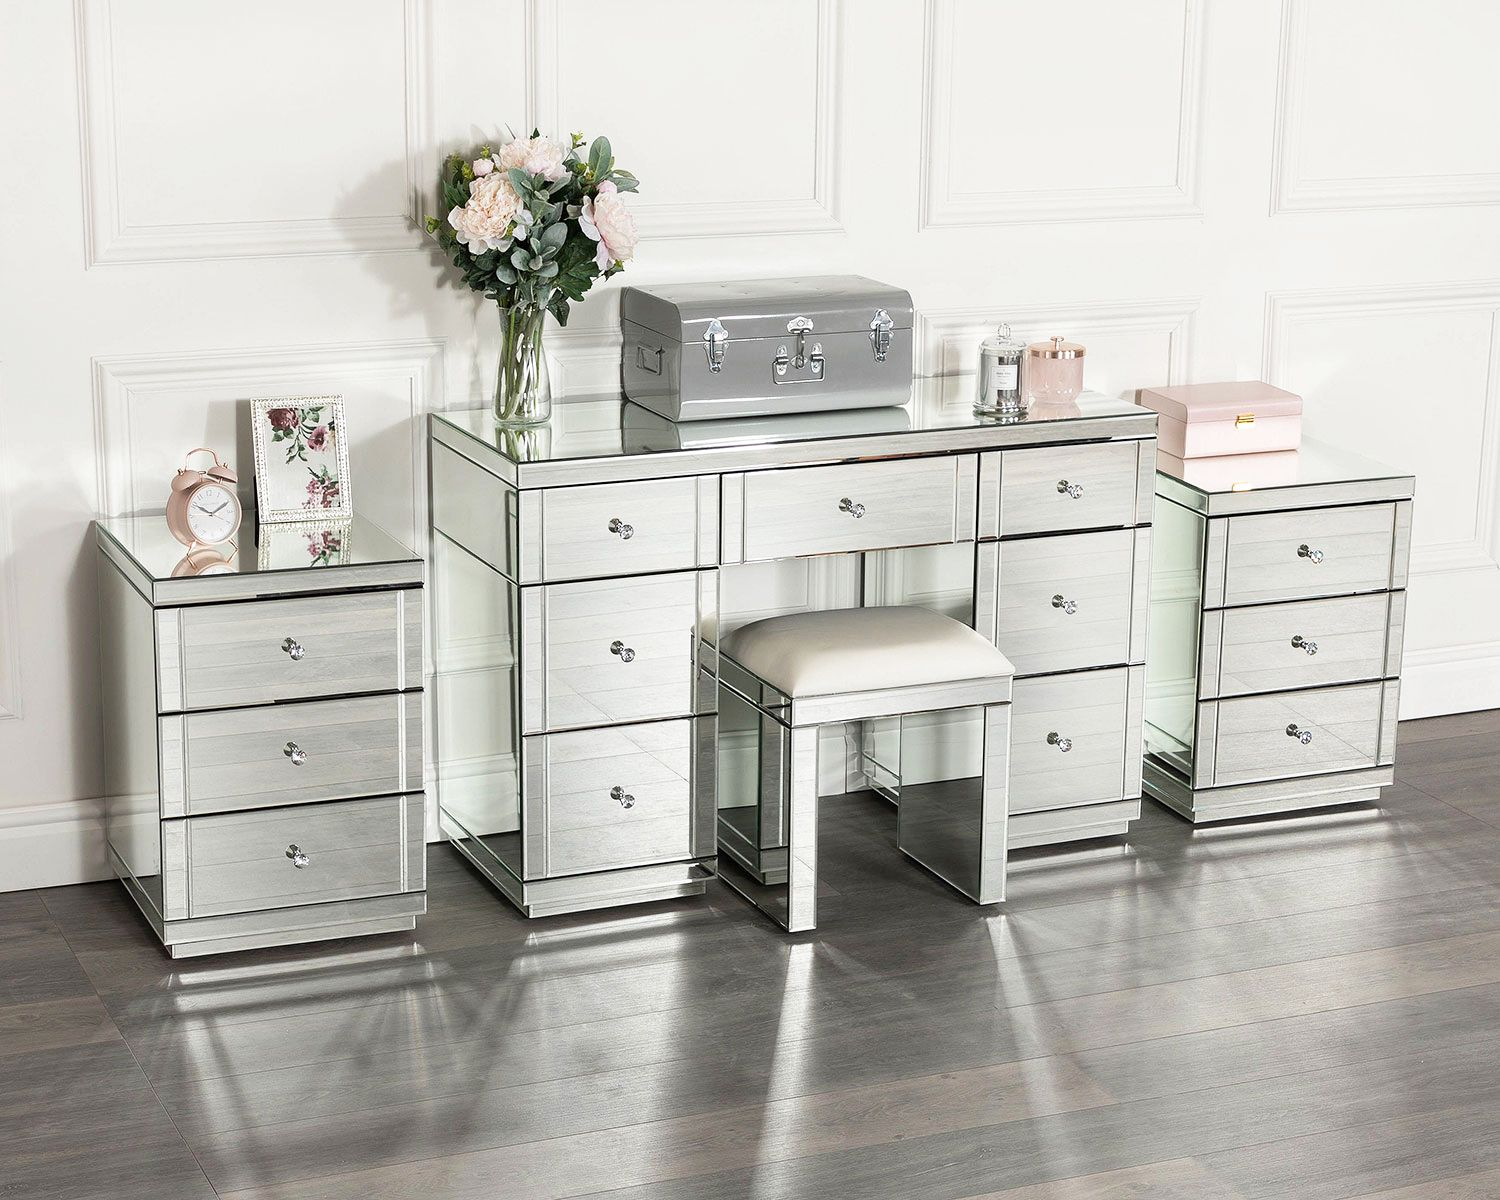 Monroe Dressing Table Set With 2 X 3 Drawer Bedside Tables And Mirrored Stool In Silver Dressing Table Set Mirrored Bedroom Furniture Dressing Room Design